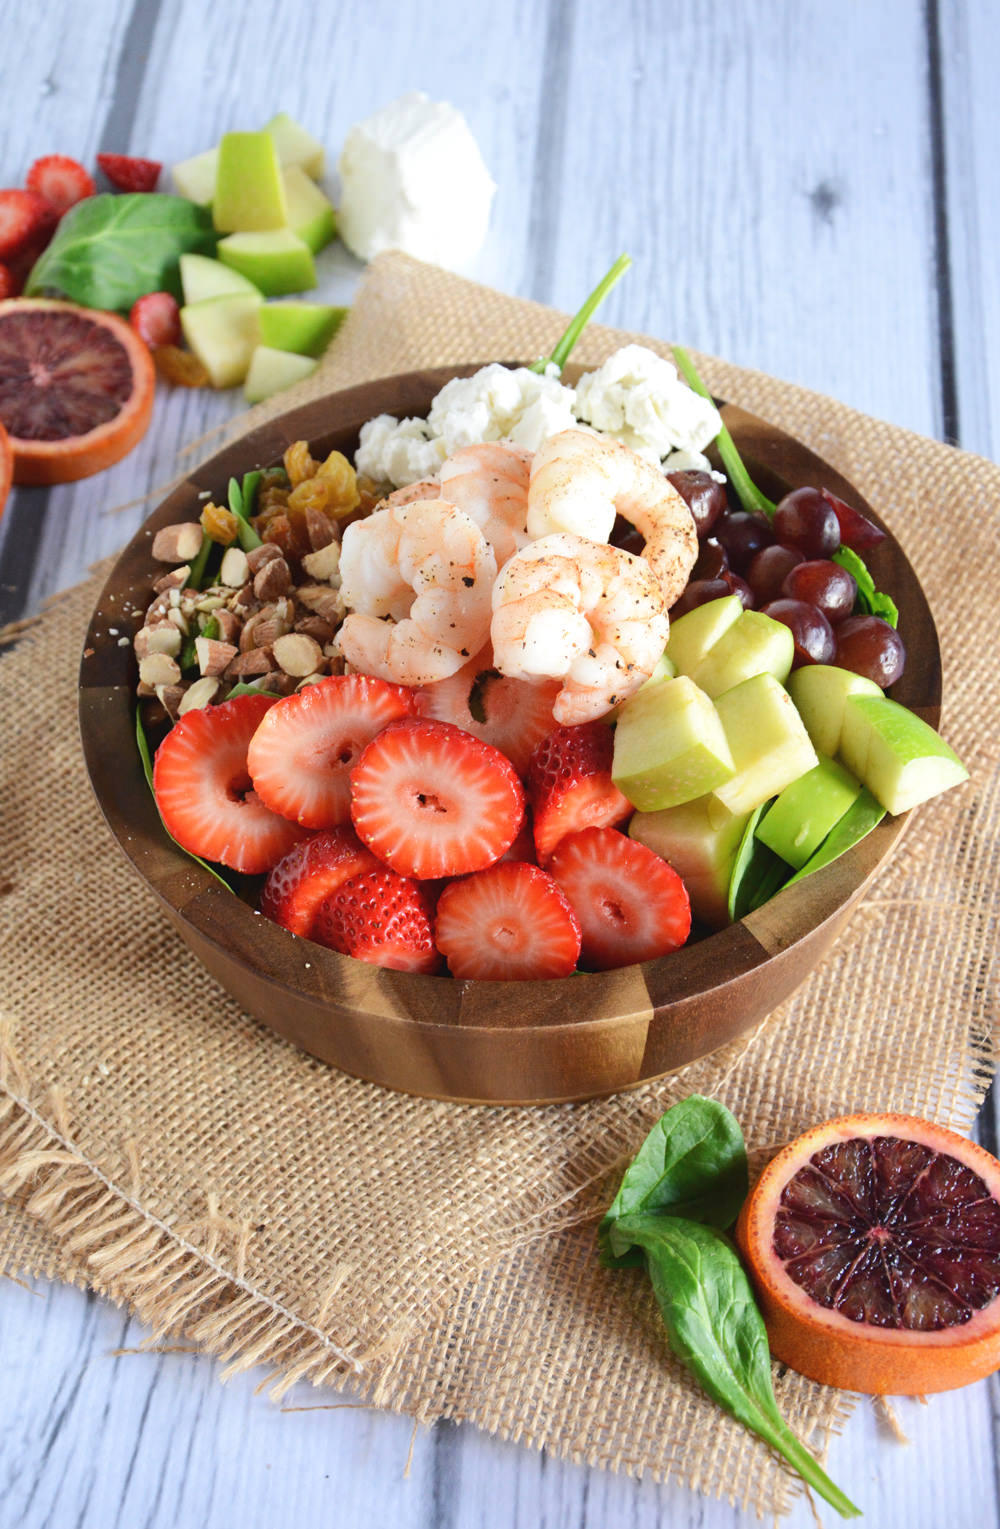 A vibrant salad with roasted shrimp, packed with fresh fruit, creamy goat cheese and roasted almonds and topped with a sweet citrus dressing made from blood oranges and sweetened with honey. This salad is colorful, healthy, and delicious!